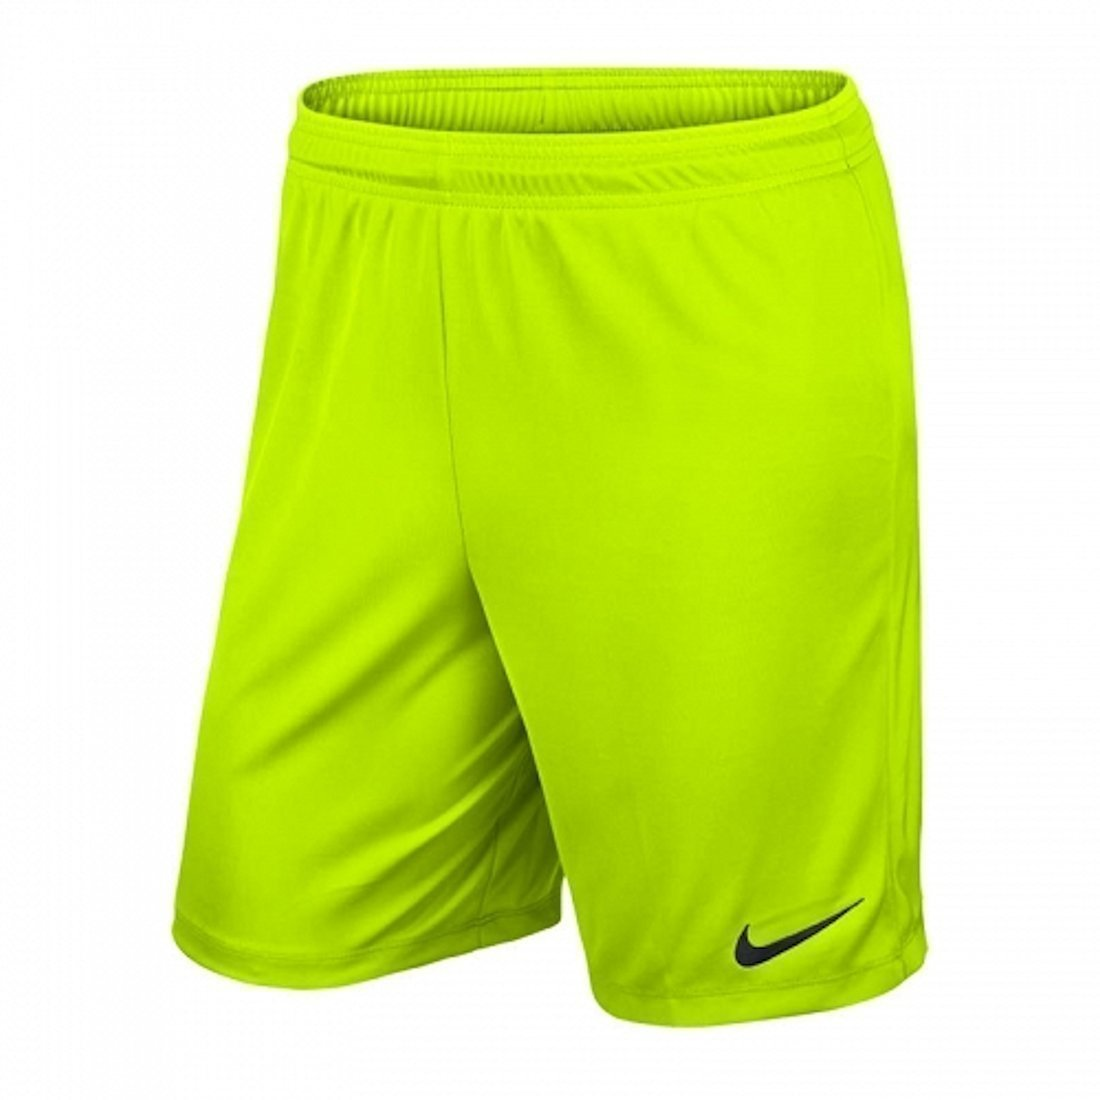 Nike Park II Knit Football Shorts